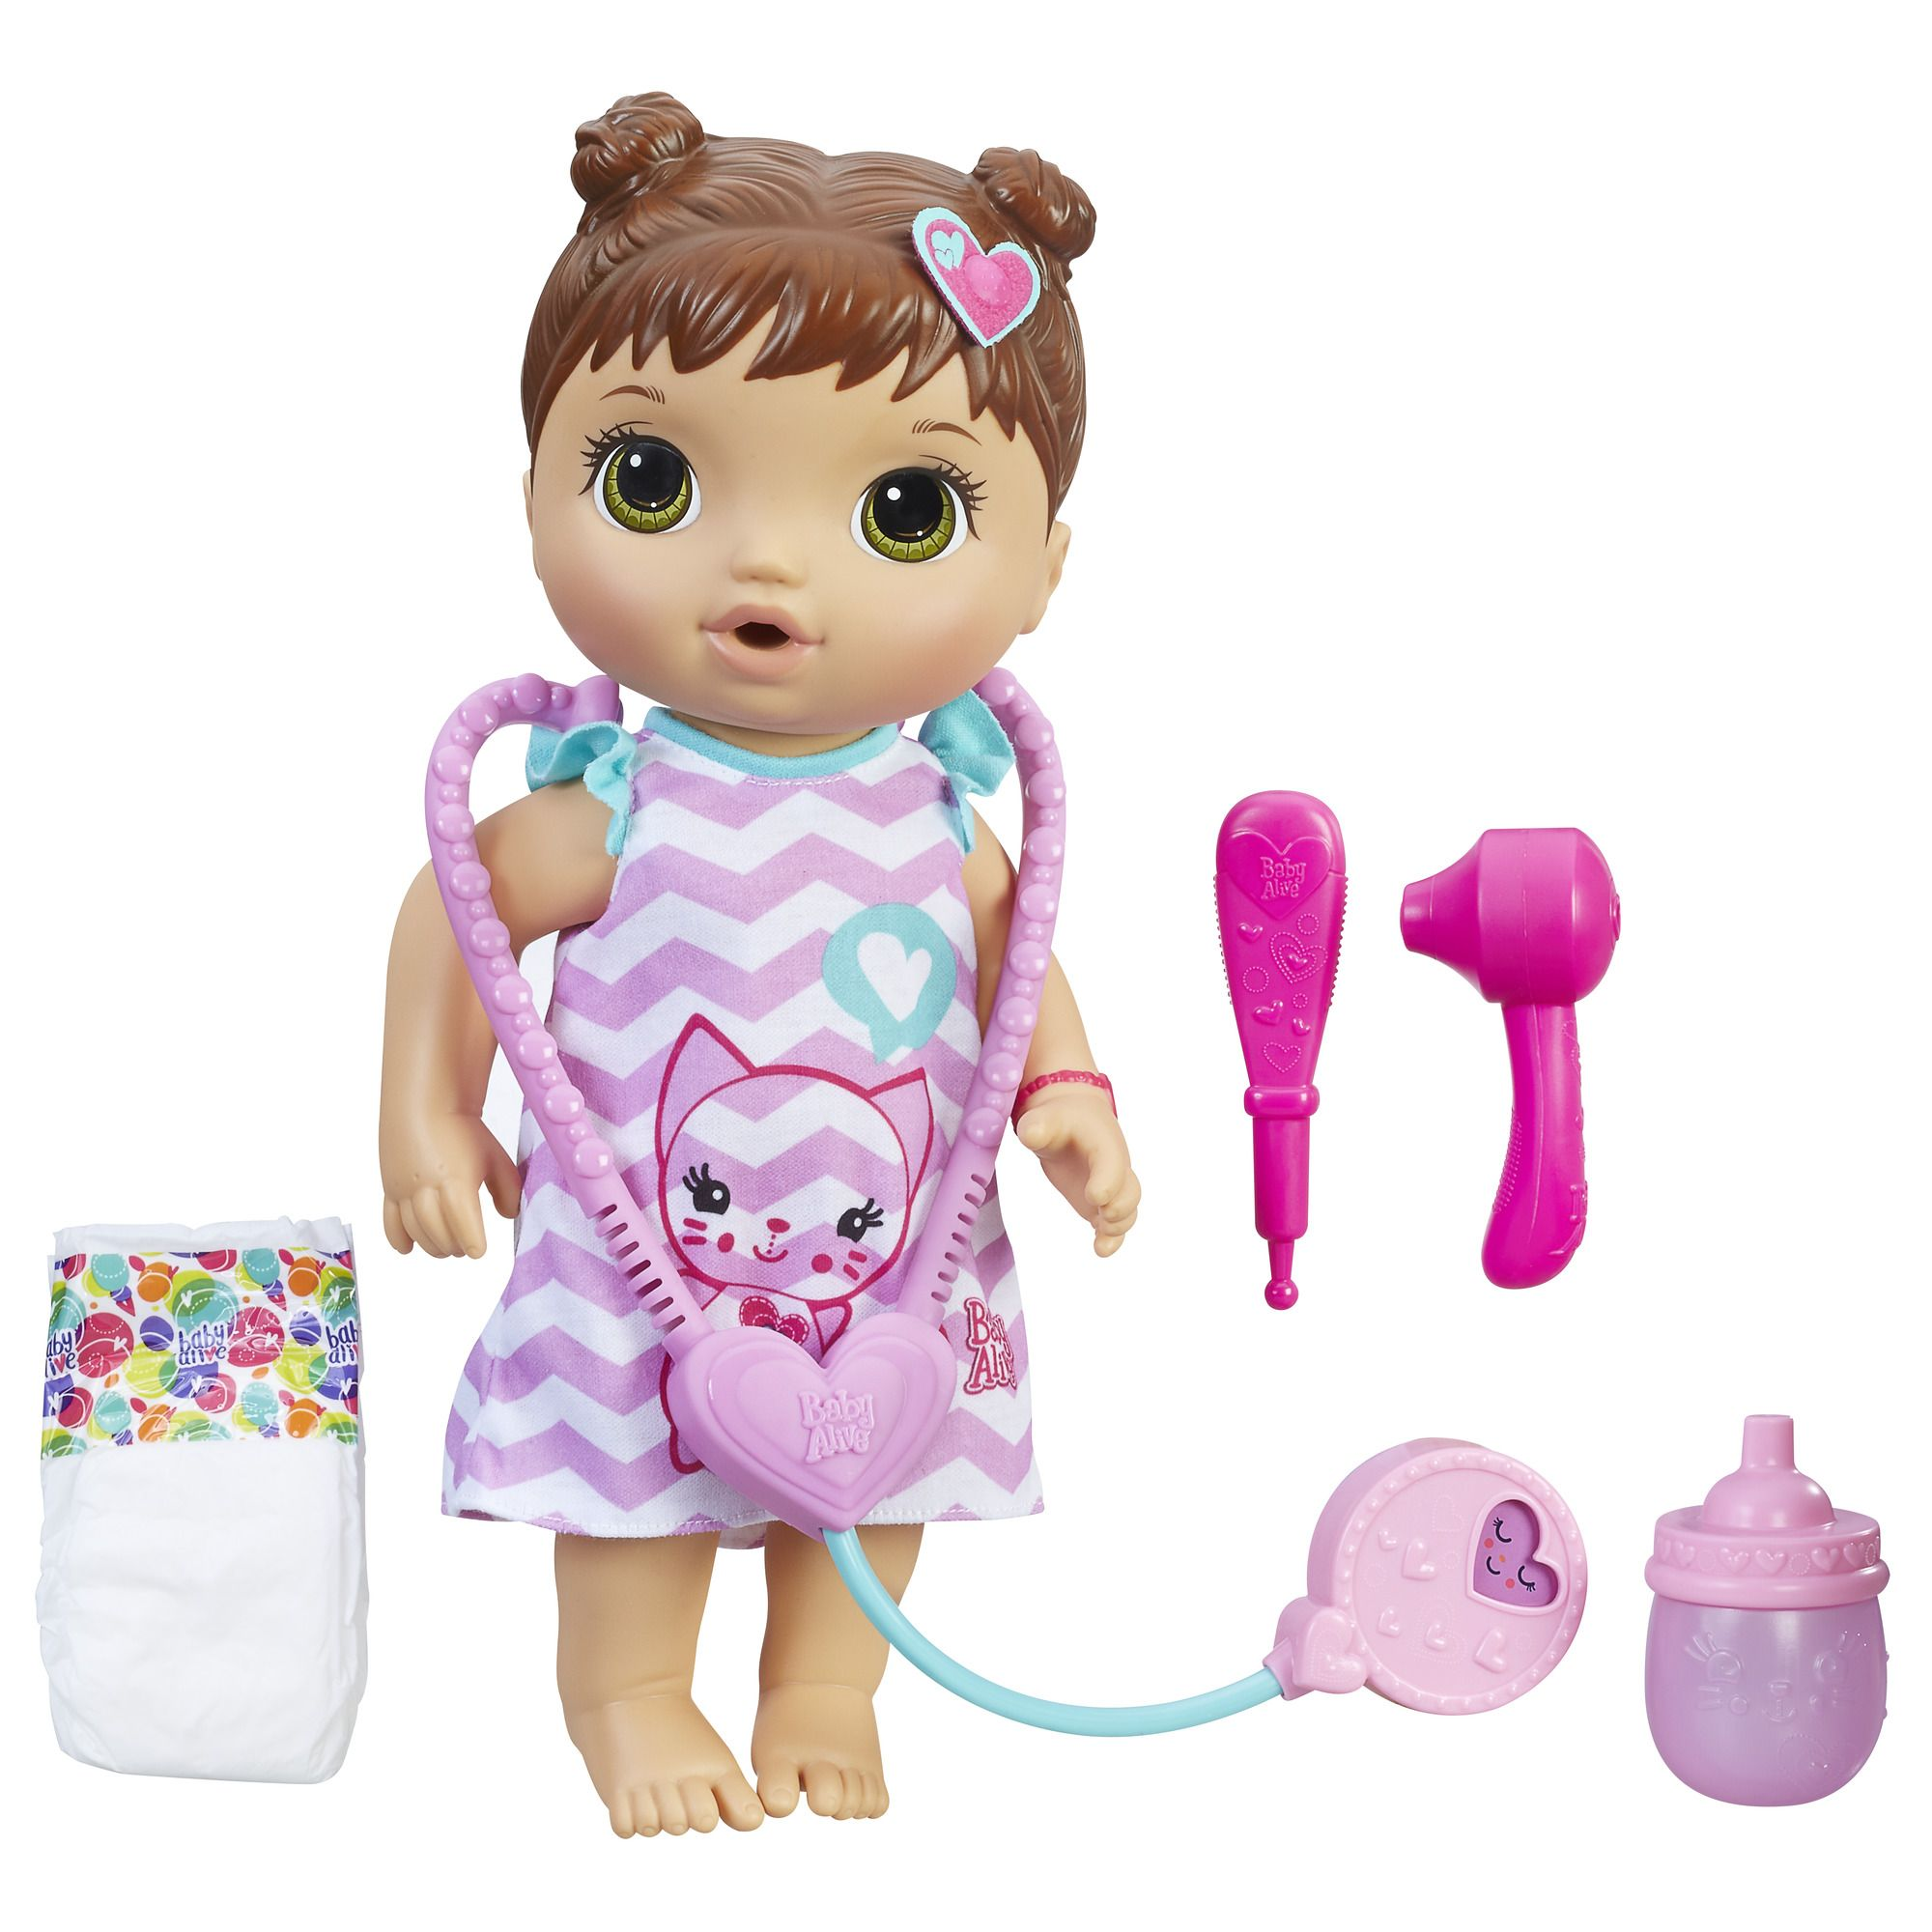 Baby Alive Better Now Bailey Brunette Multi Color Baby Alive